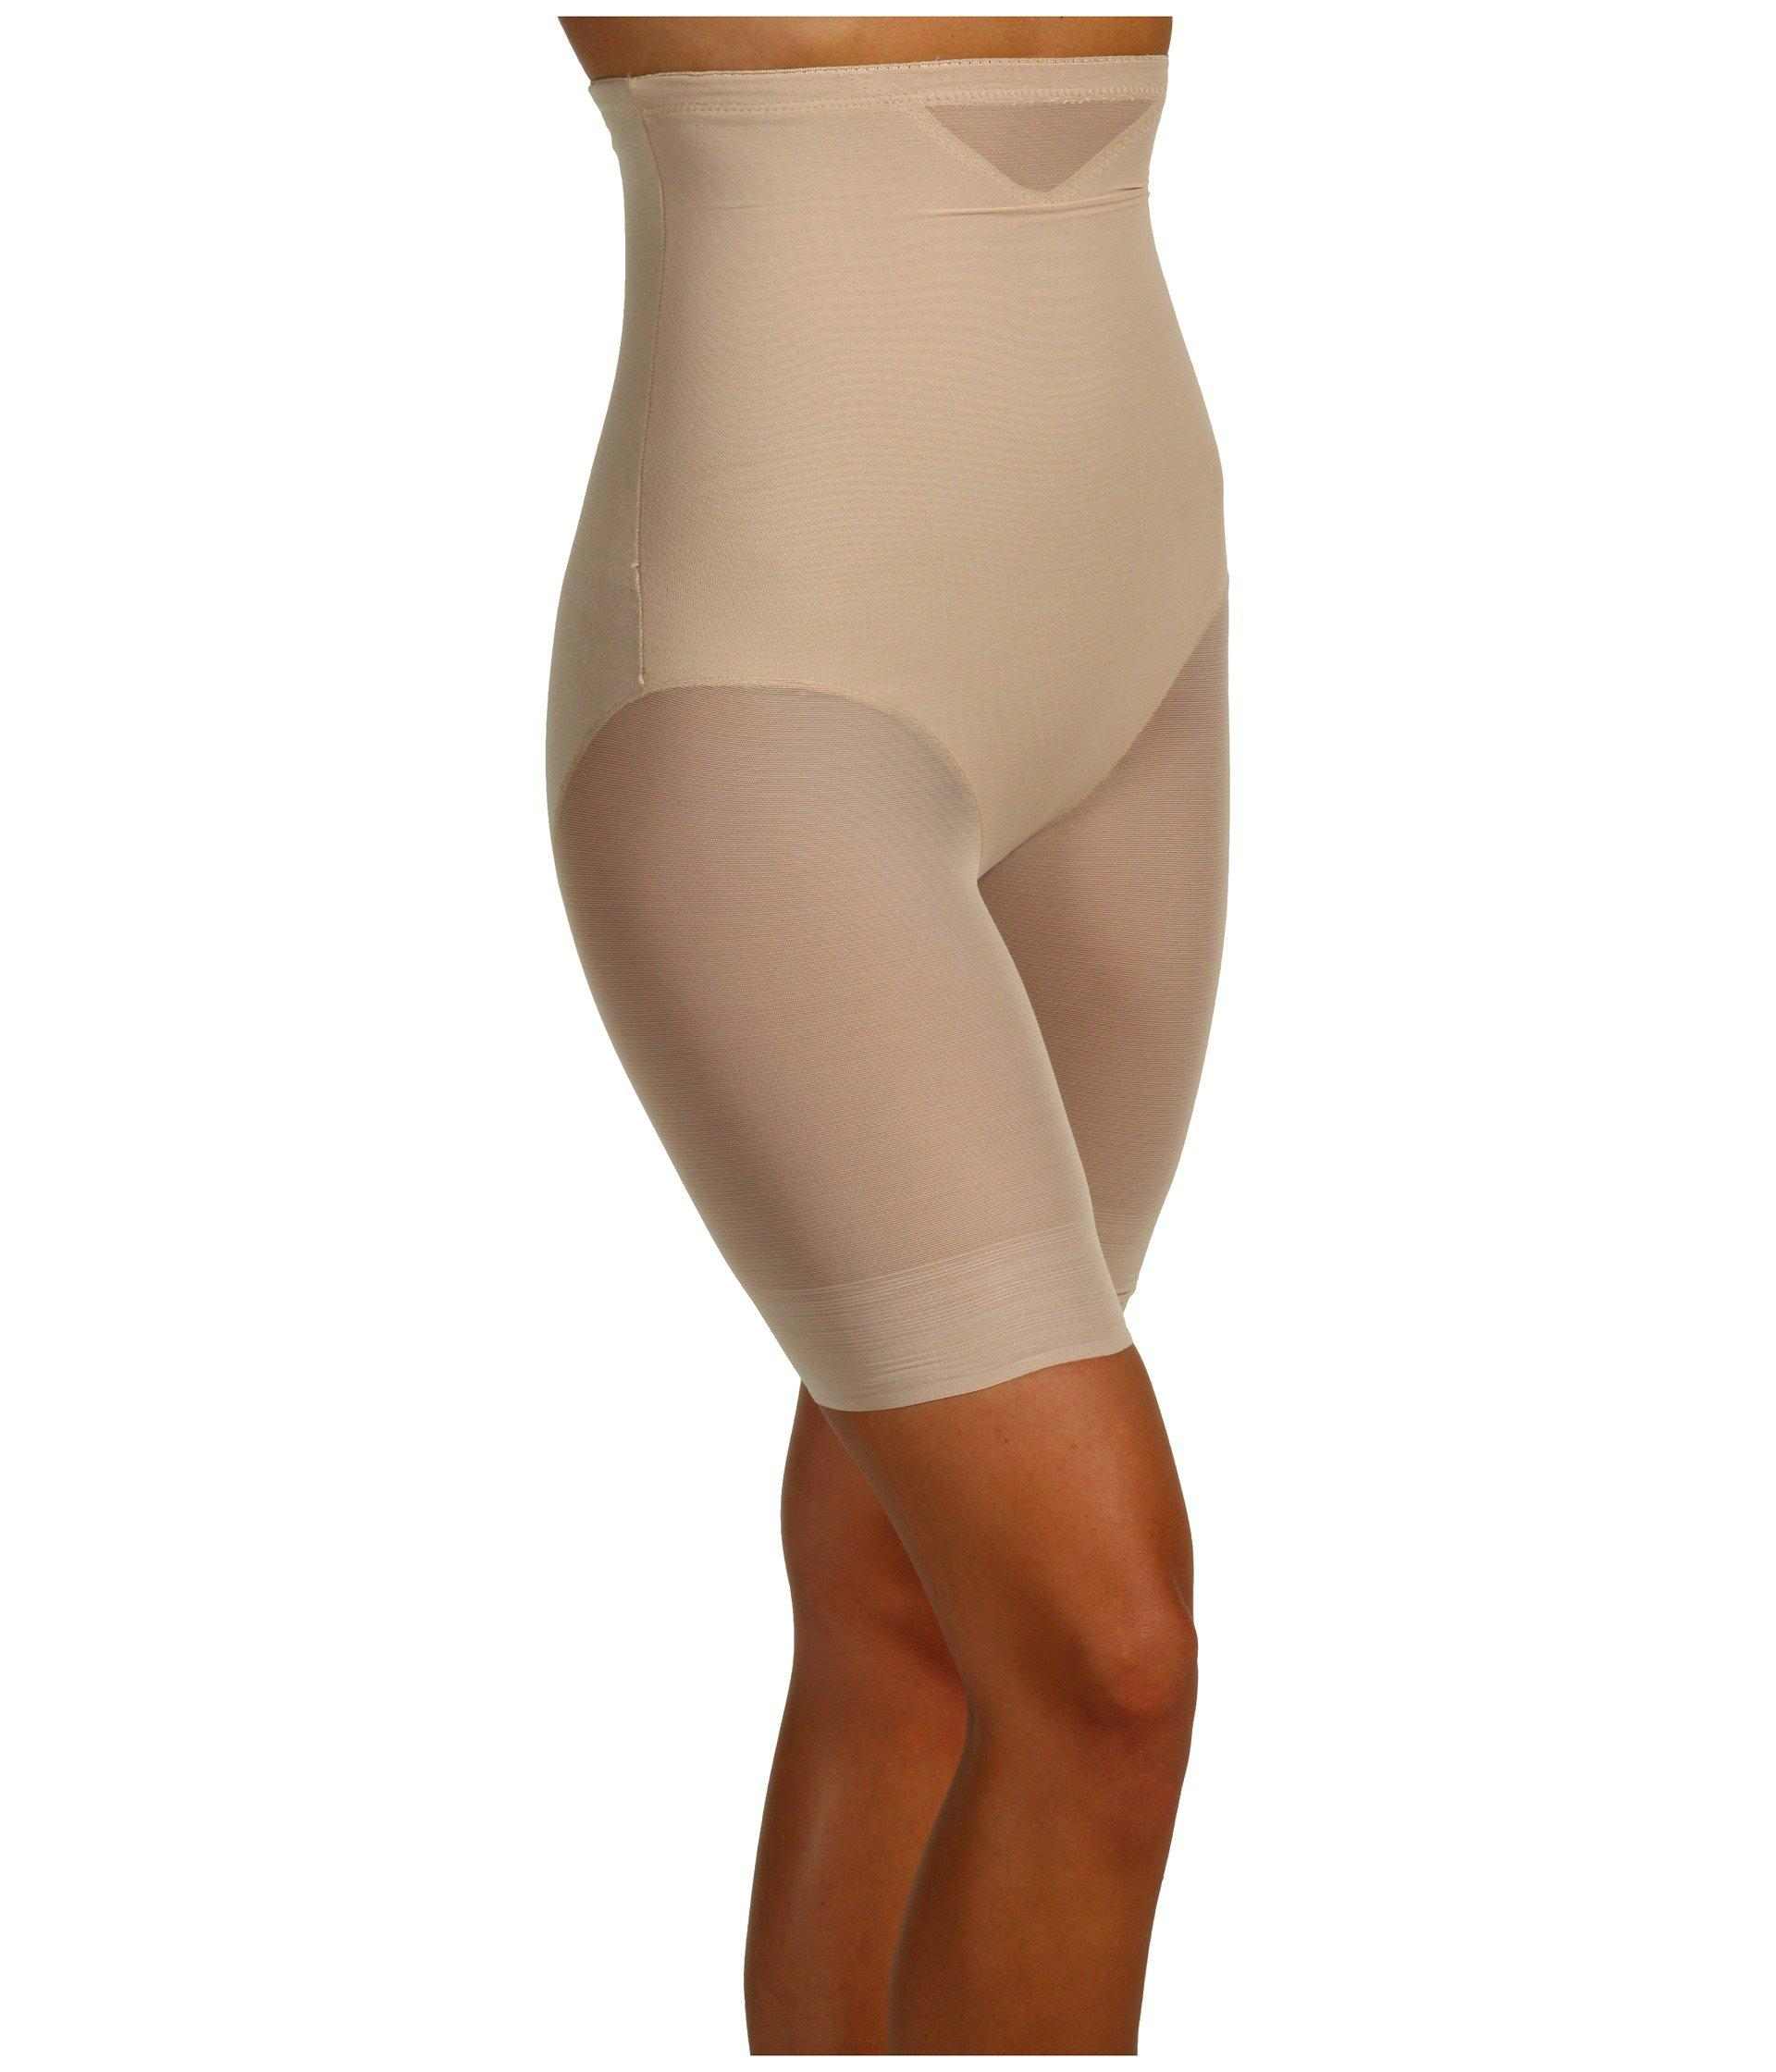 bf8c8b89117 Miraclesuit - Natural Extra Firm Sexy Sheer Shaping Hi-waist Thigh Slimmer  (black). View fullscreen